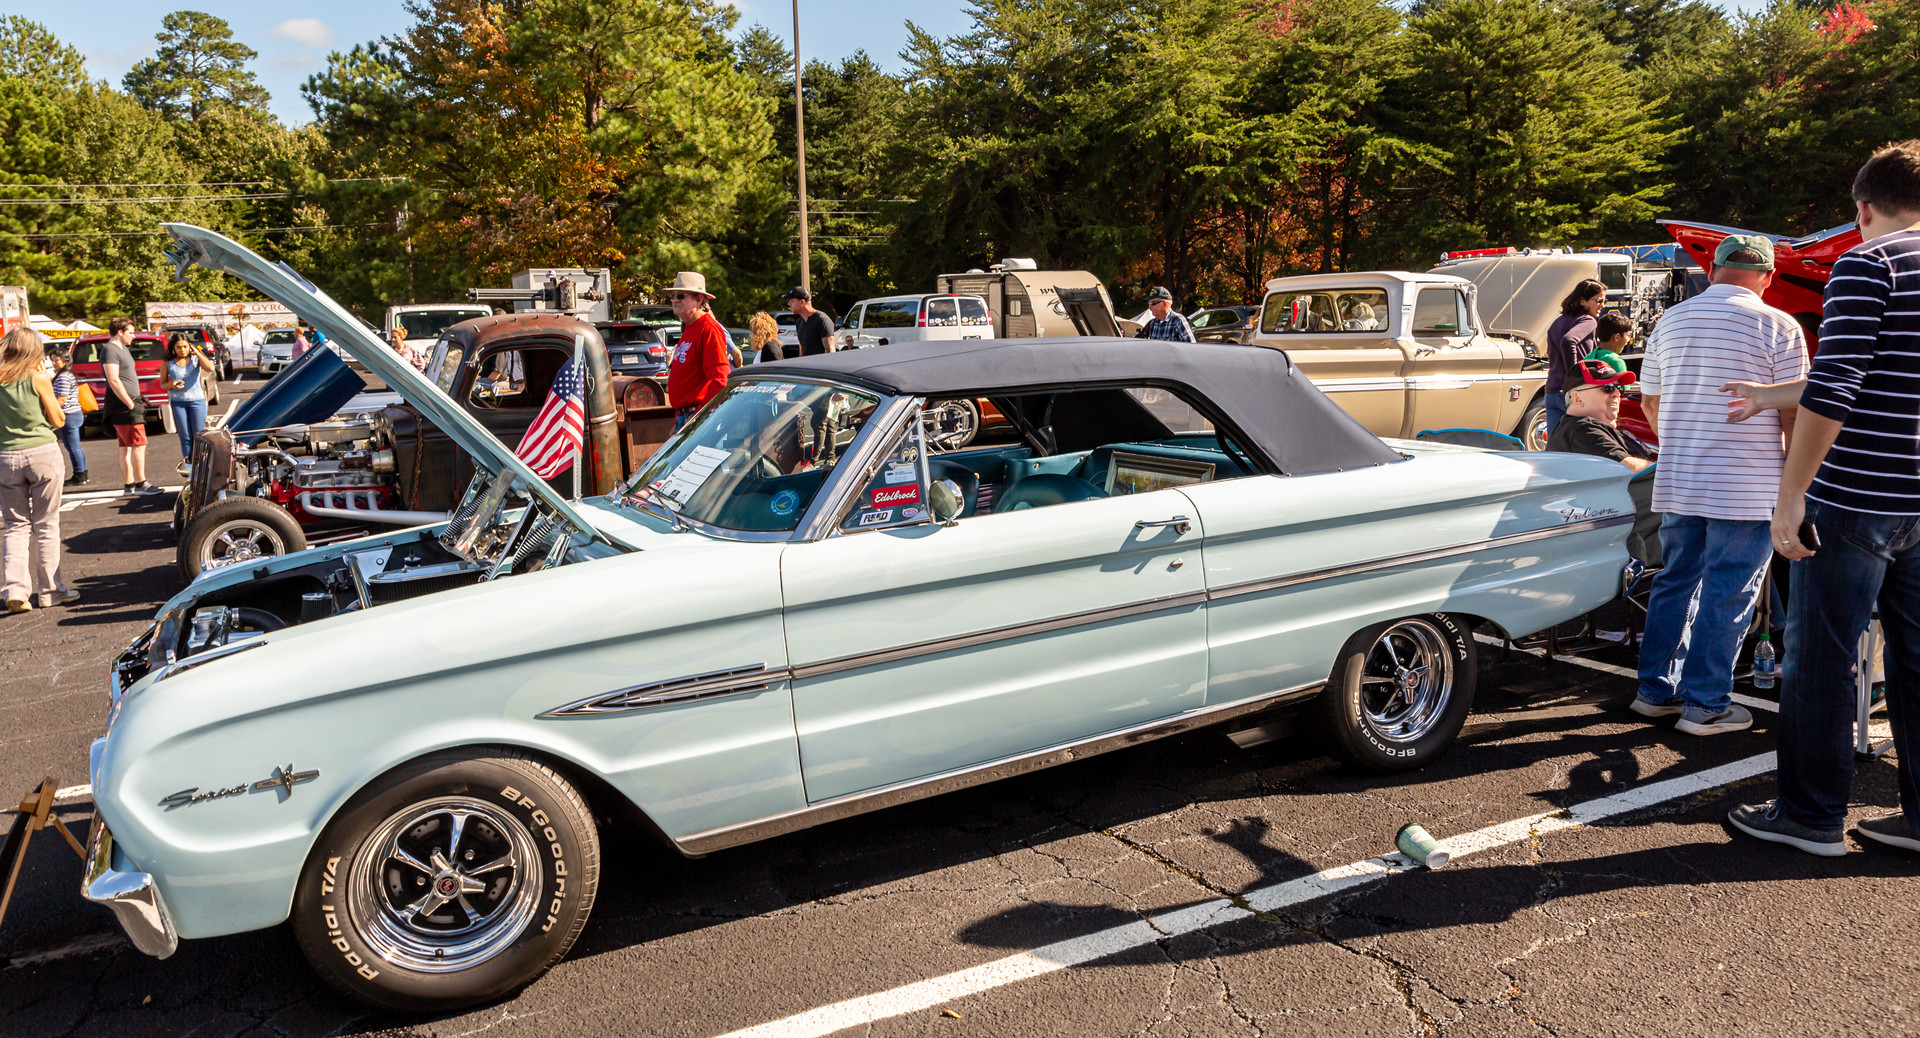 BH Art Fest Car Show 19 (29 of 109).jpg